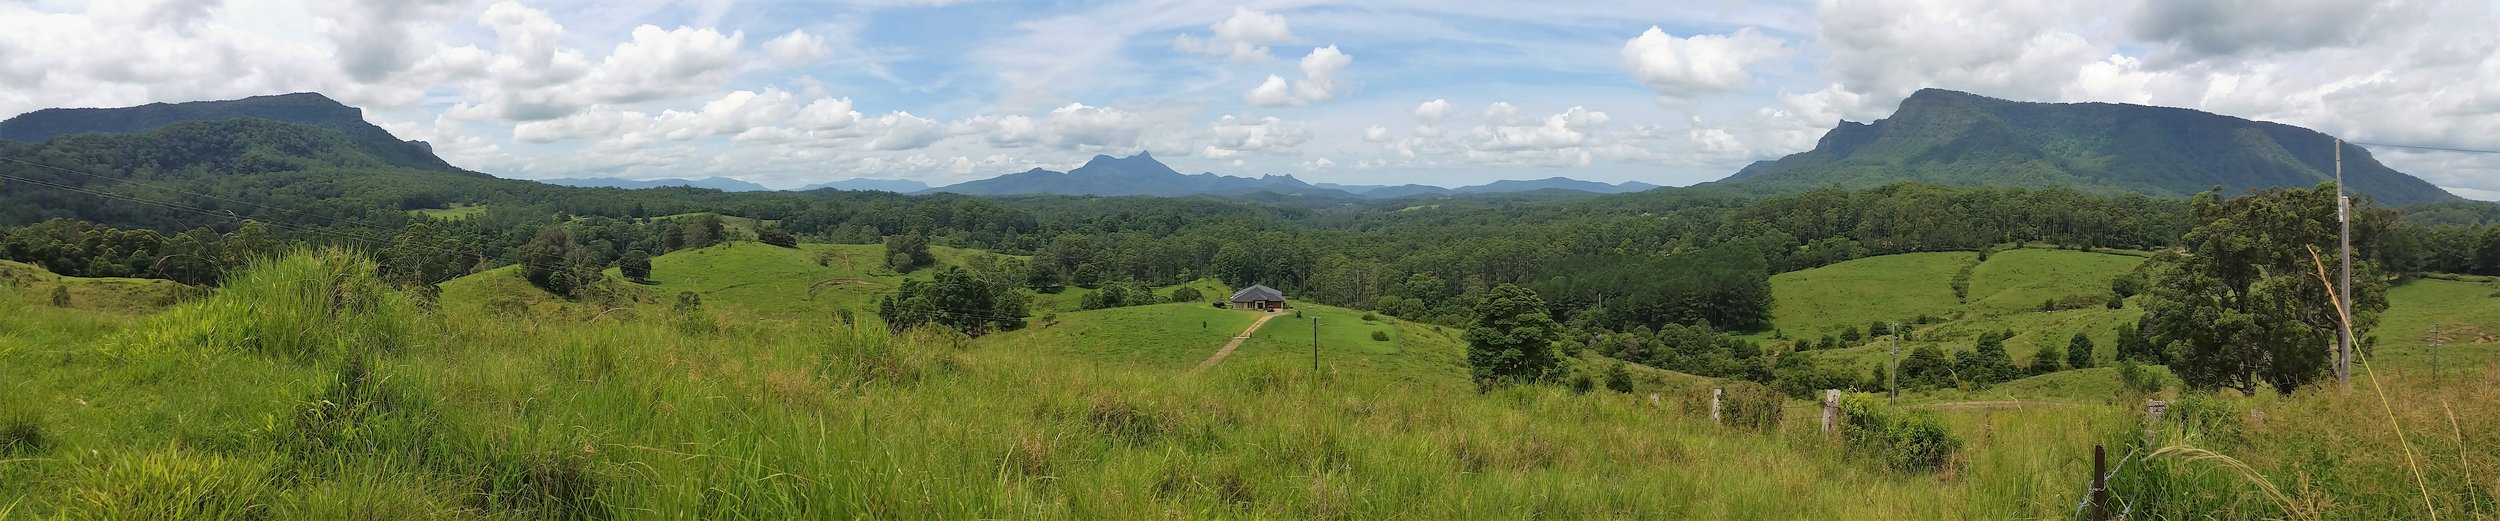 Mt Warning (Wollombin) National Park centre is surrounded by Border Ranges National Park (left) and Nightcap Range National Park (right).